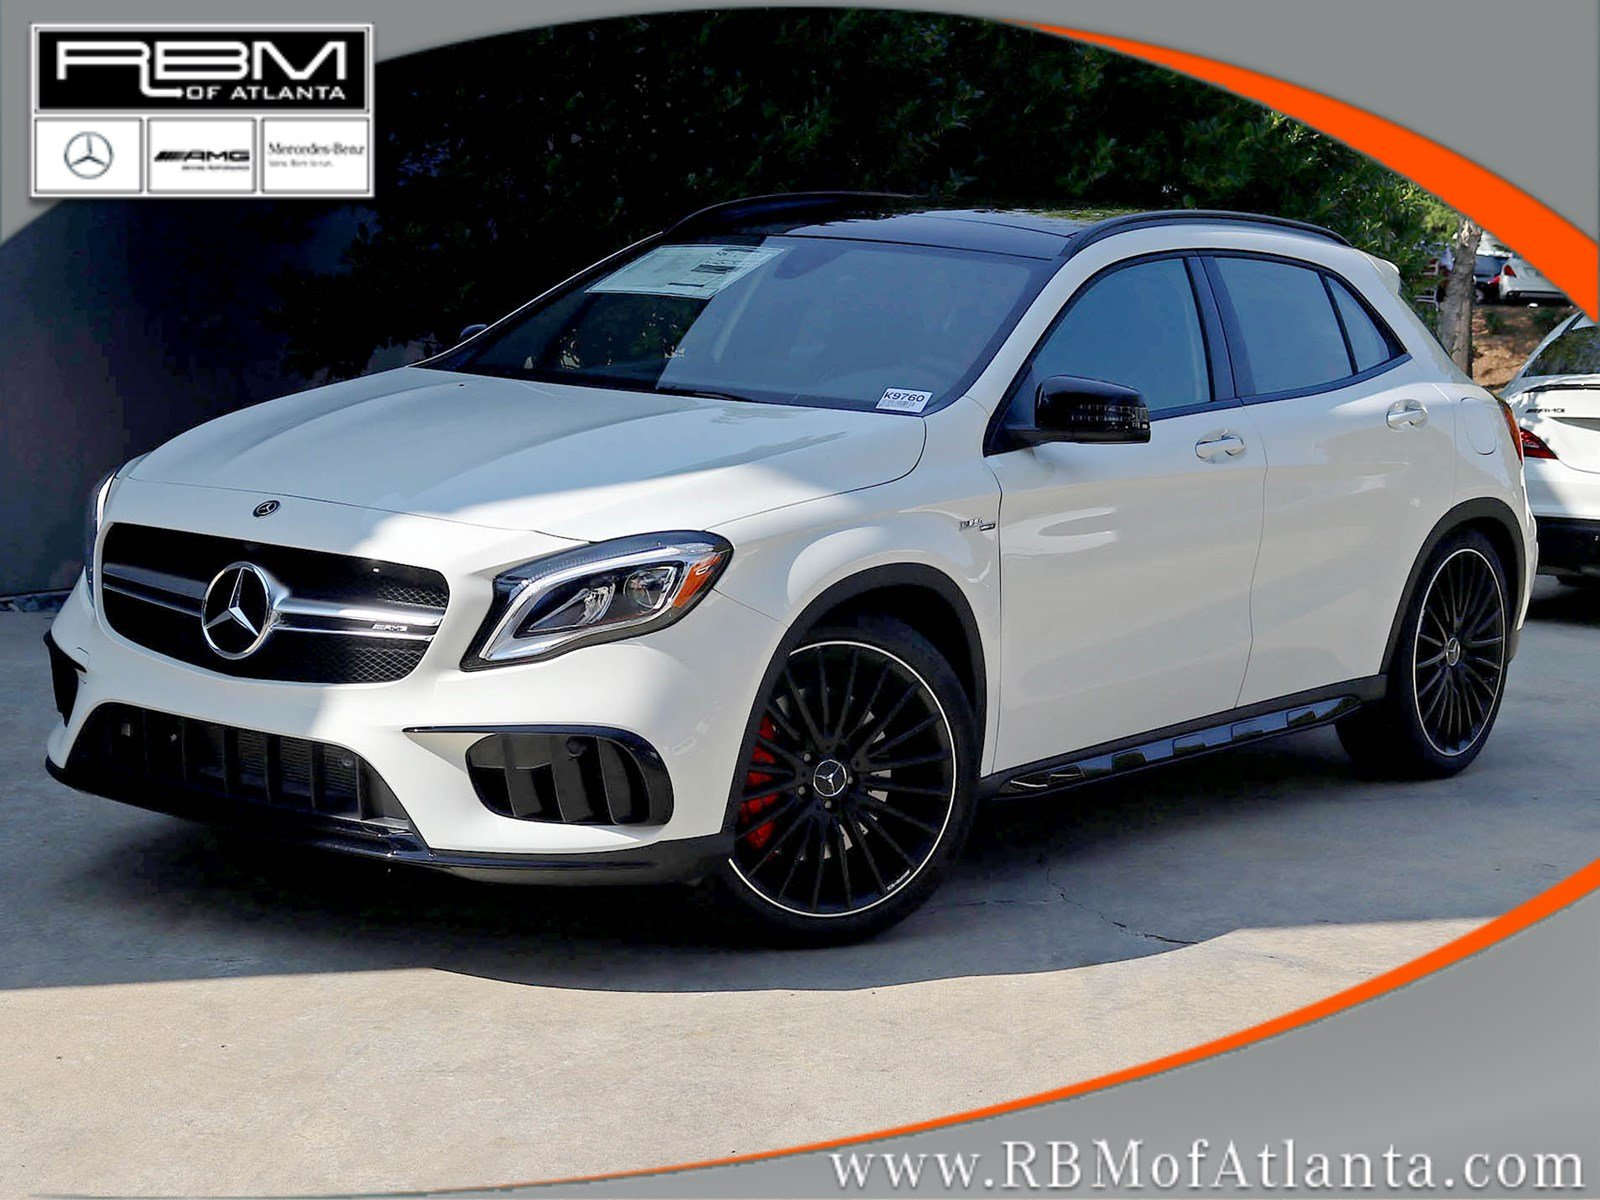 new 2018 mercedes benz gla gla 45 amg suv suv in atlanta k9760 rbm of atlanta. Black Bedroom Furniture Sets. Home Design Ideas